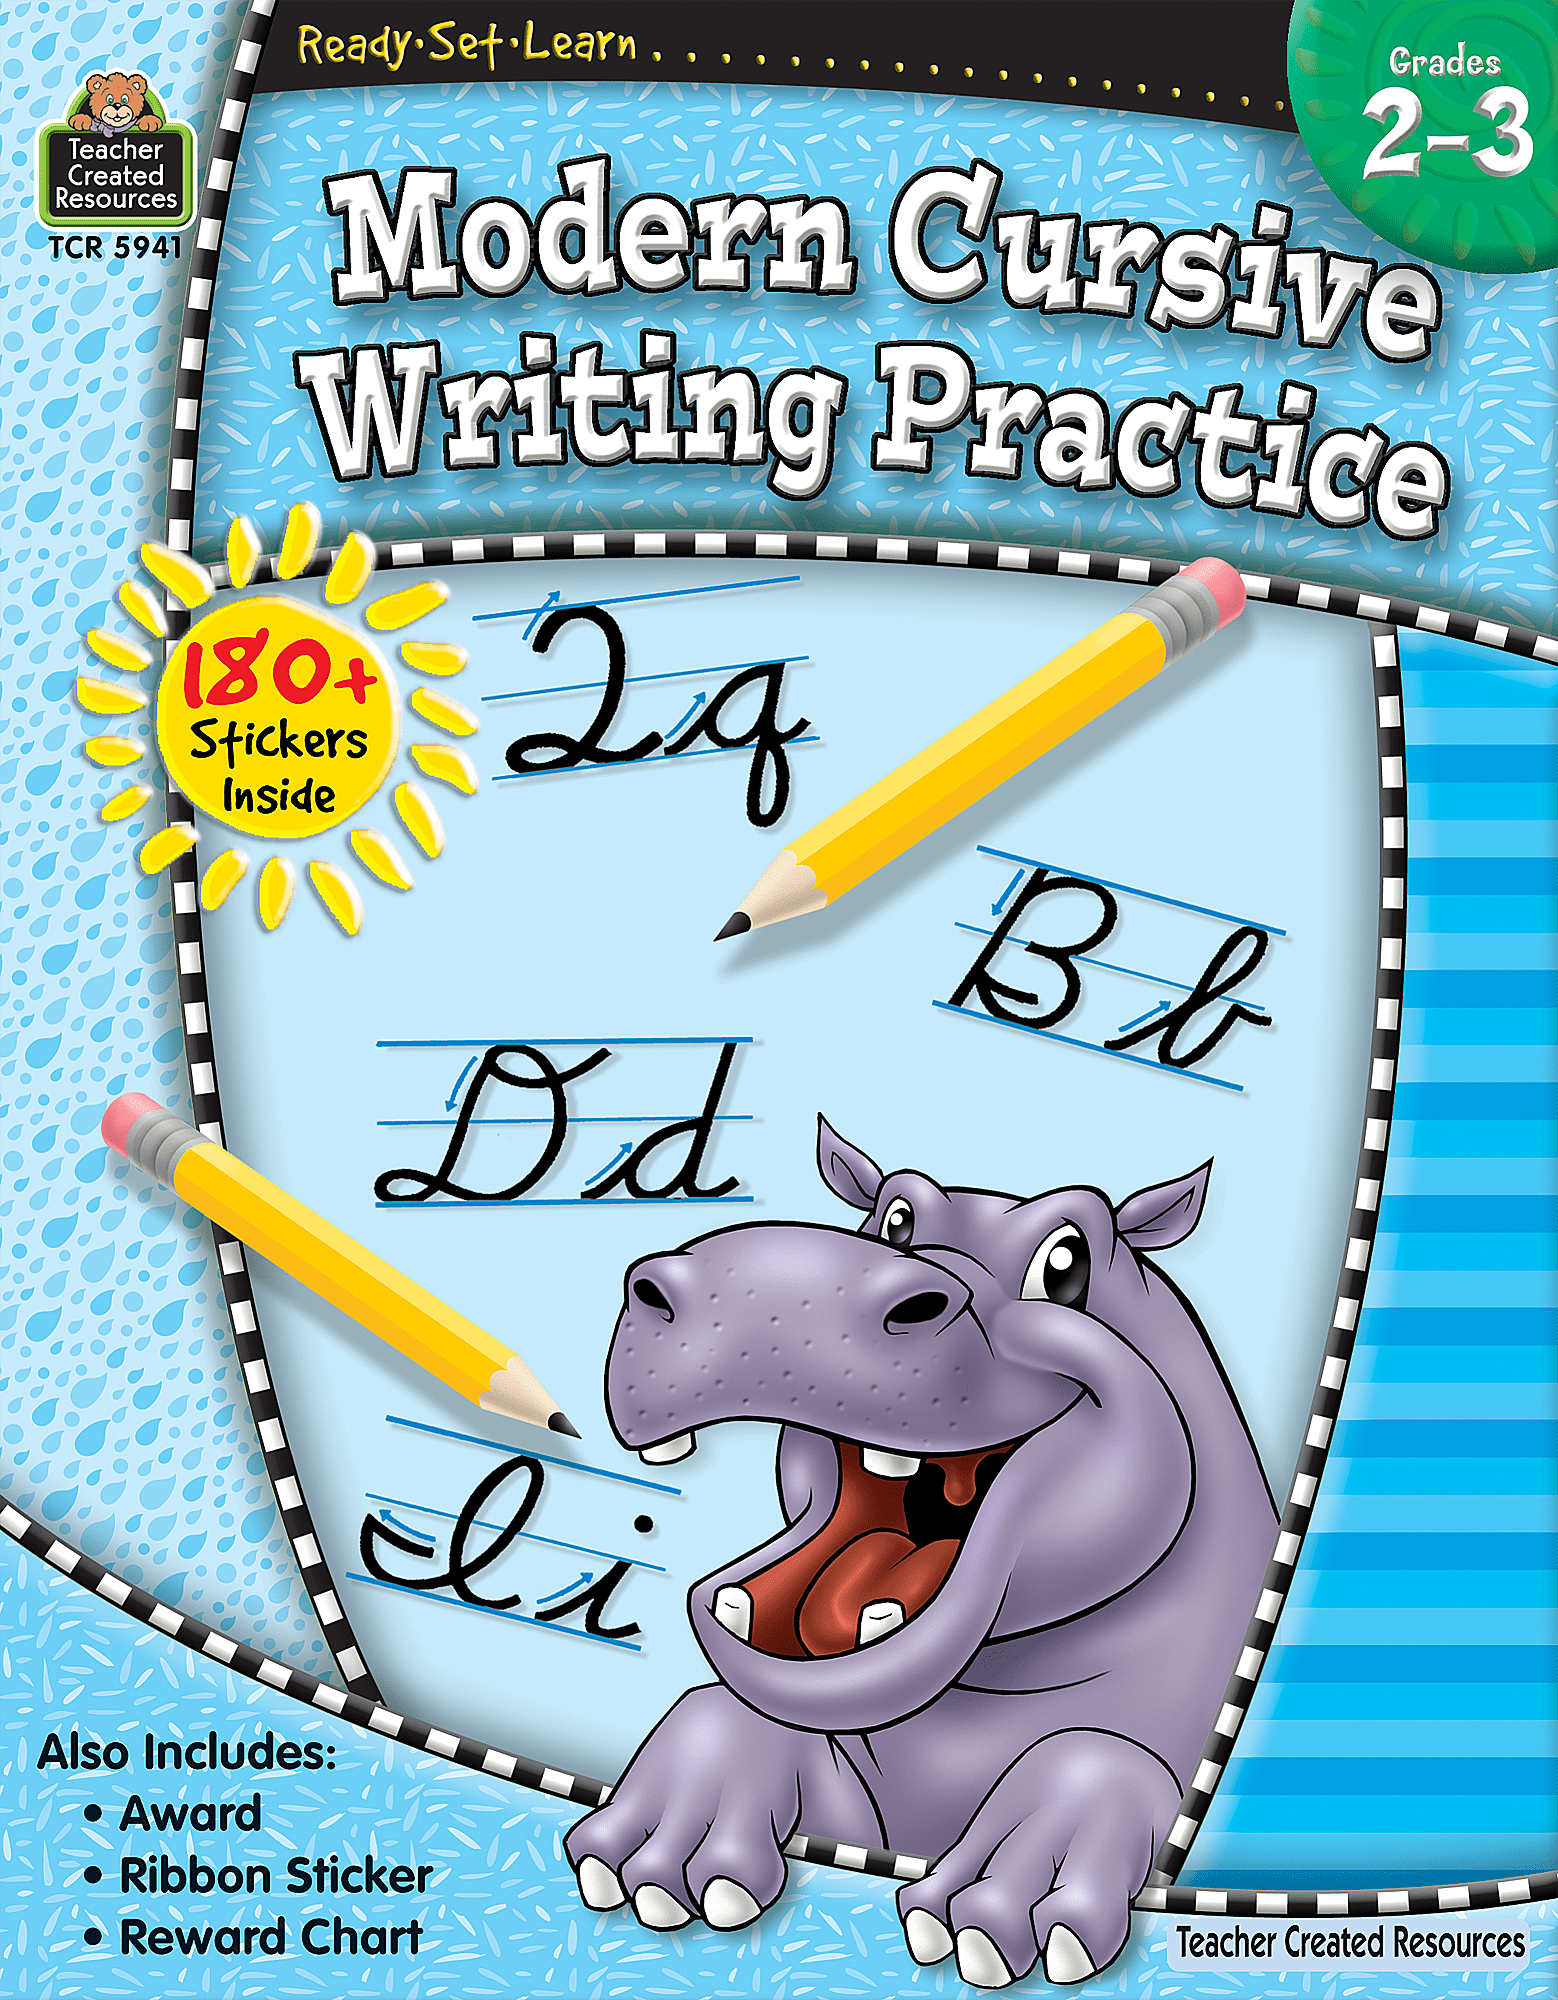 Ready Set Learn Modern Cursive Writing Practice Grade 2 3